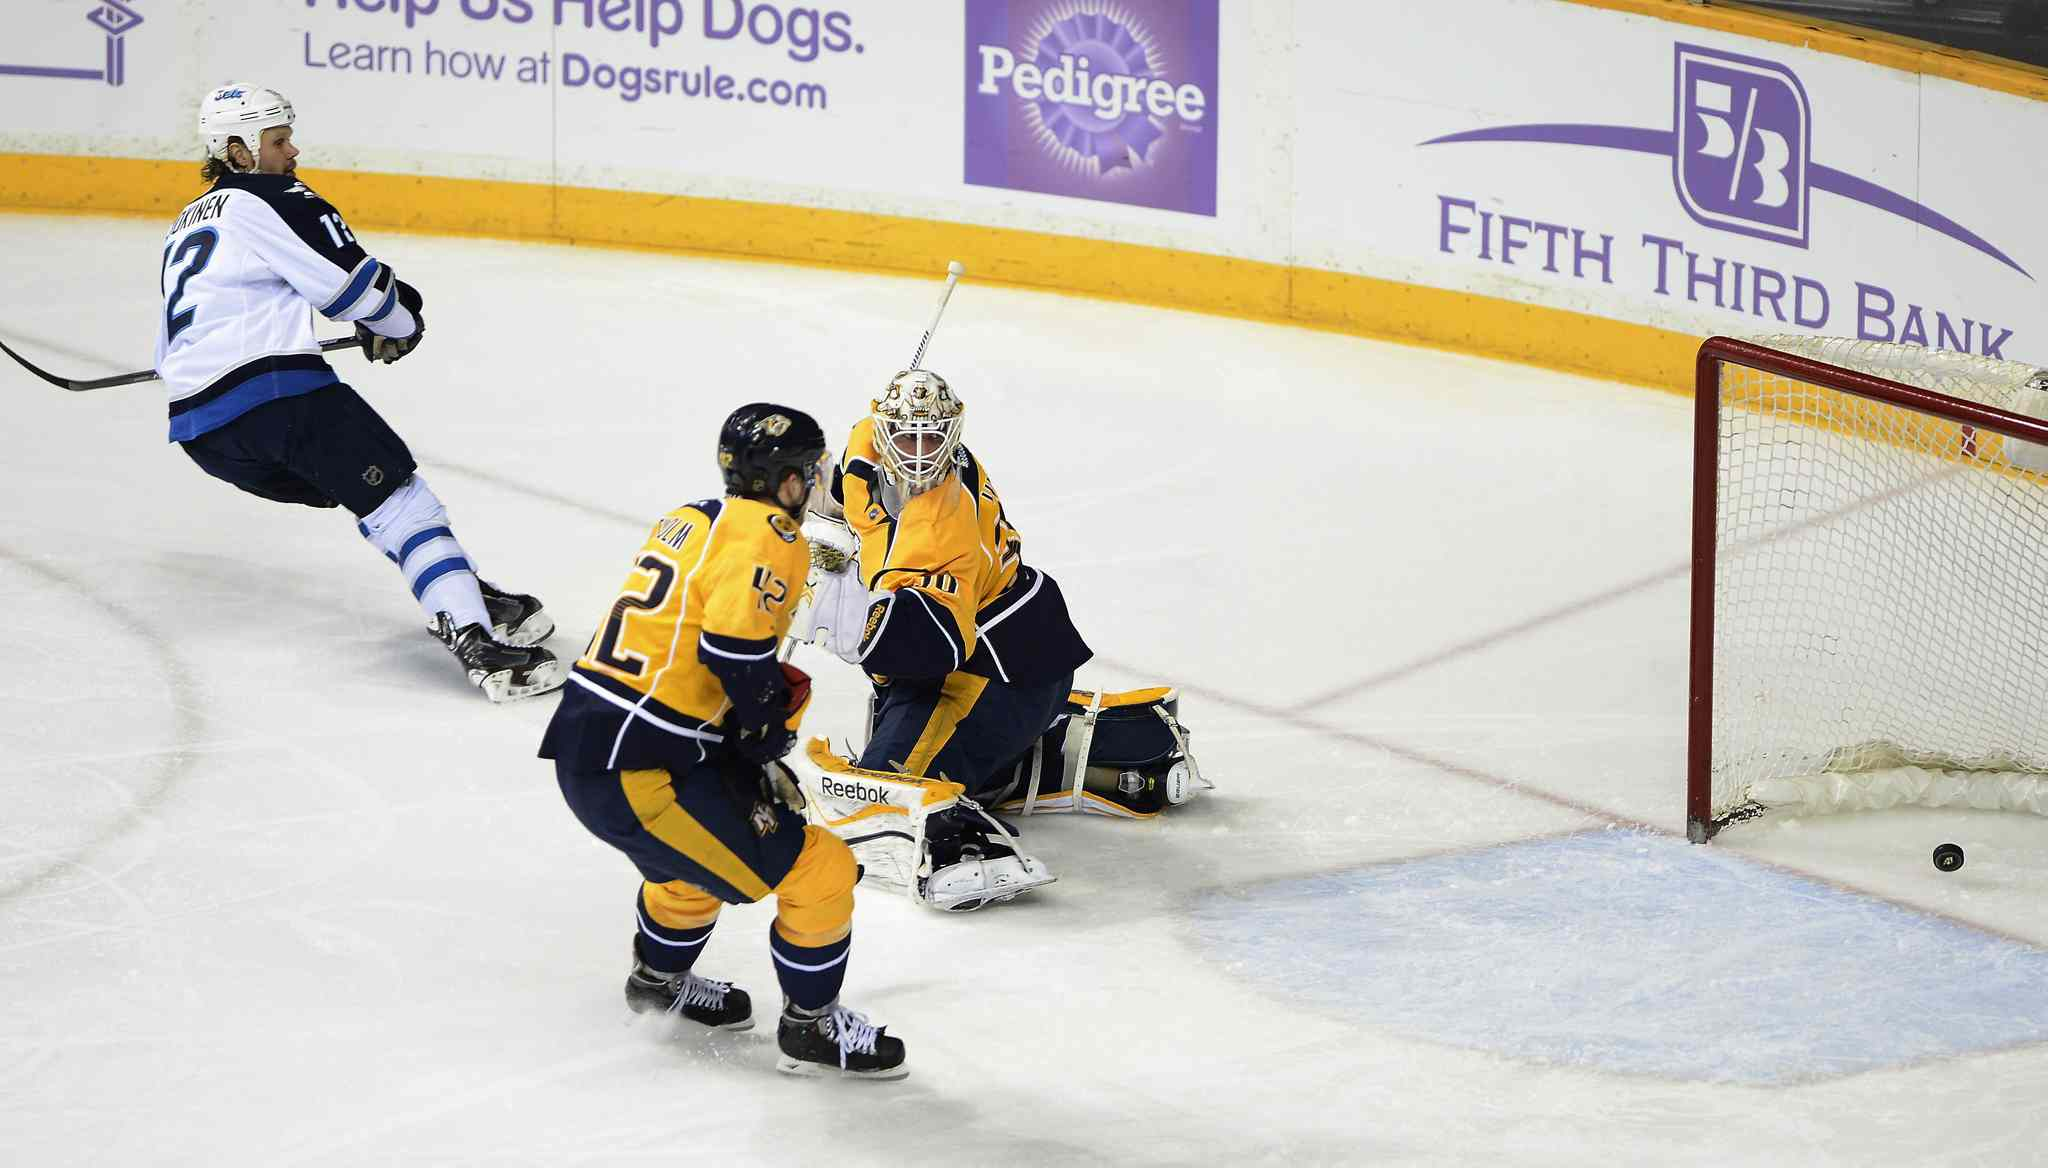 Winnipeg Jets' centre Olli Jokinen (12) scores a second-period goal against Nashville Predators' defenseman Mattias Ekholm (42) and goalie Carter Hutton (30) in Nashville Saturday.